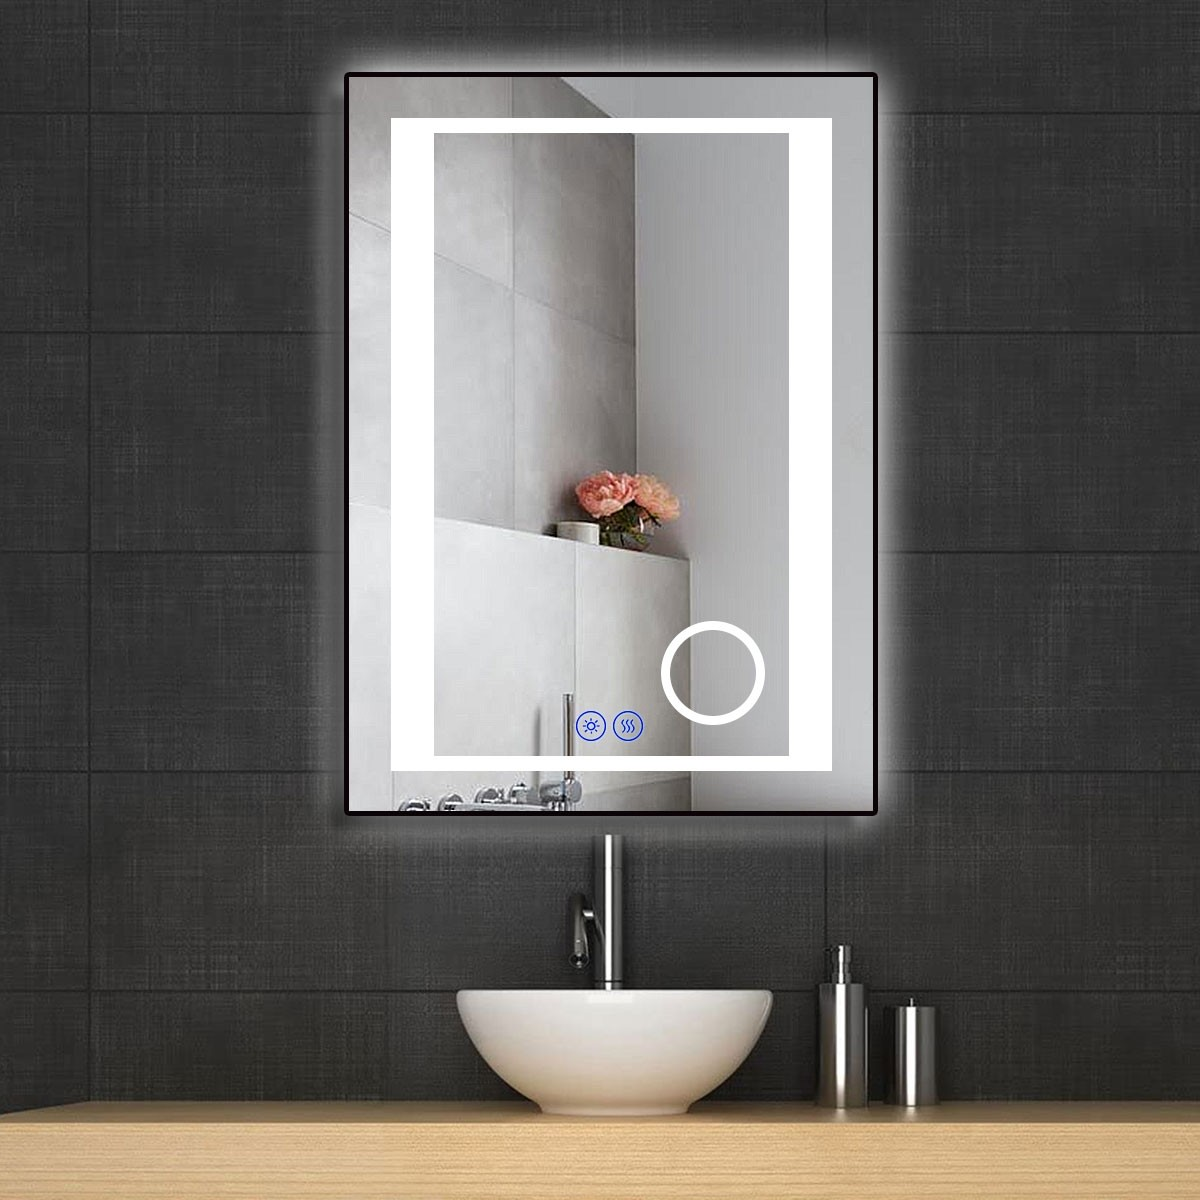 DECORAPORT 20 x 28 Inch LED Bathroom Mirror/Dress Mirror with Touch Button, Magnifier, Anti Fog, Dimmable, Vertical & Horizontal Mount (KT16-2028)